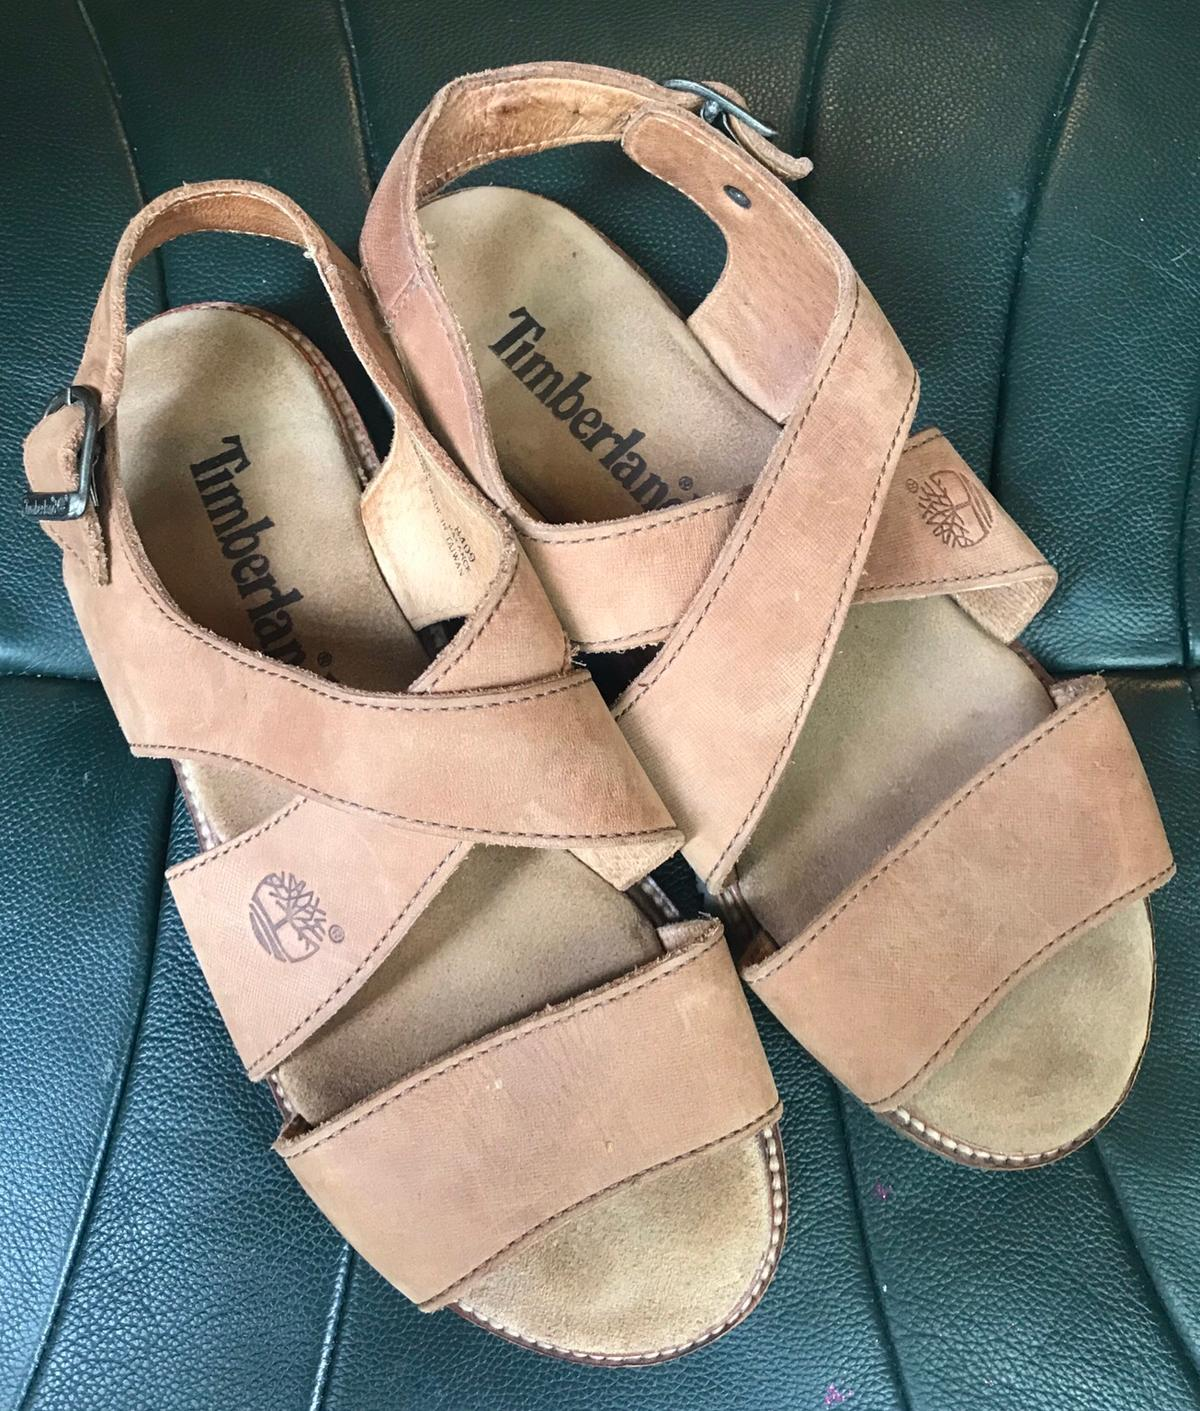 TIMBERLAND unisex tan leather sandals size 6.5 (EUR 39.5). Worn once on holiday only. Very good condition. Collection from Pimlico or NW8 area, or £3.50 Postage Costs for UK Royal Mail Delivery.